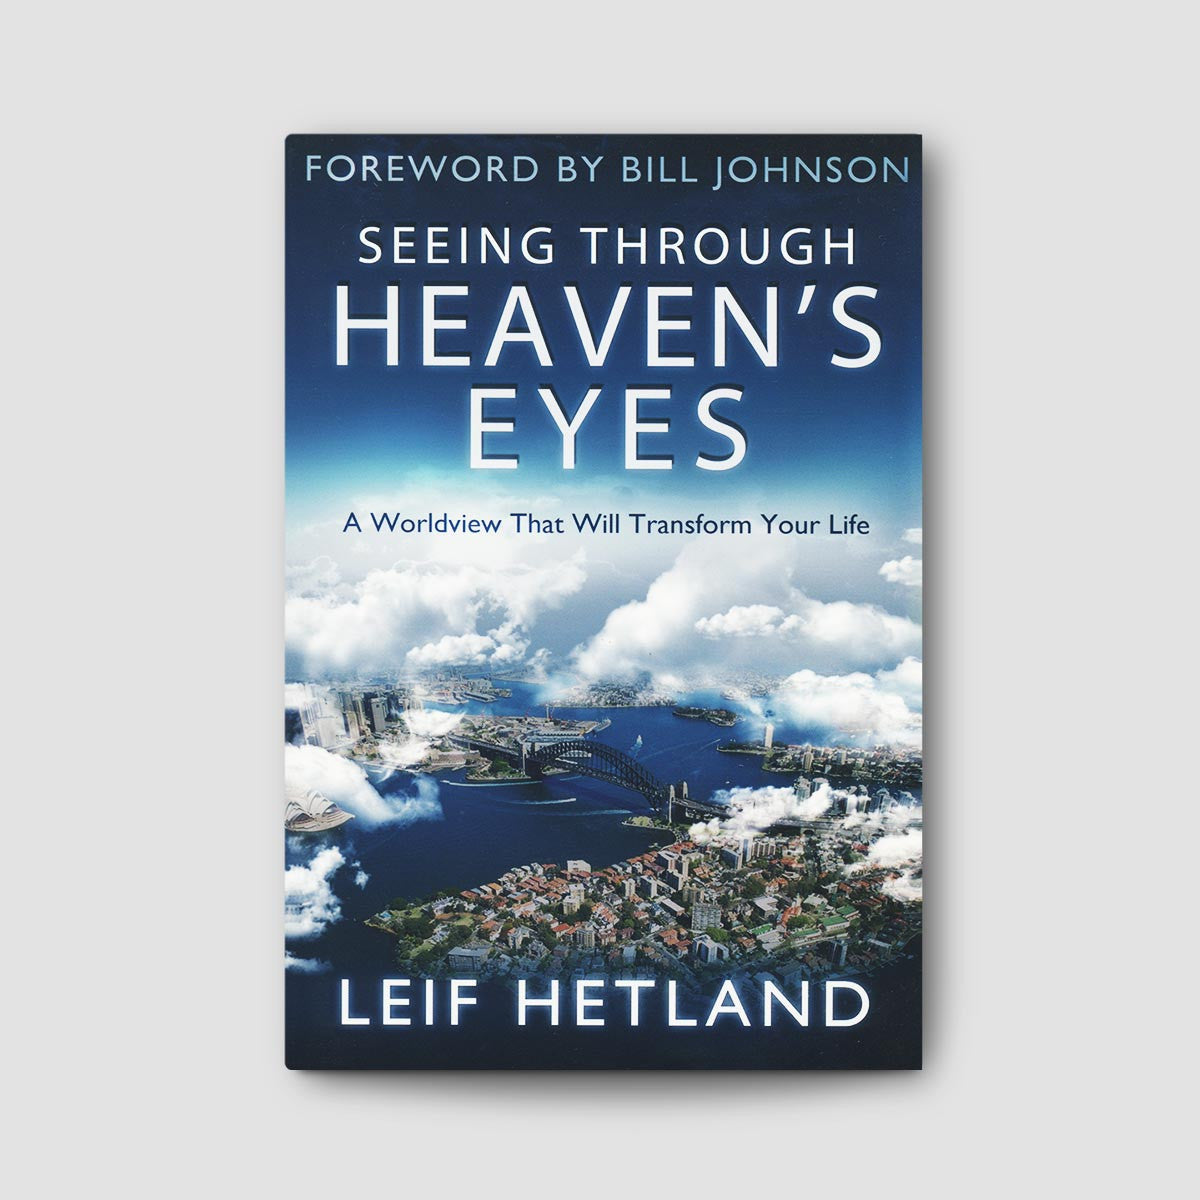 Seeing Through Heaven's Eyes